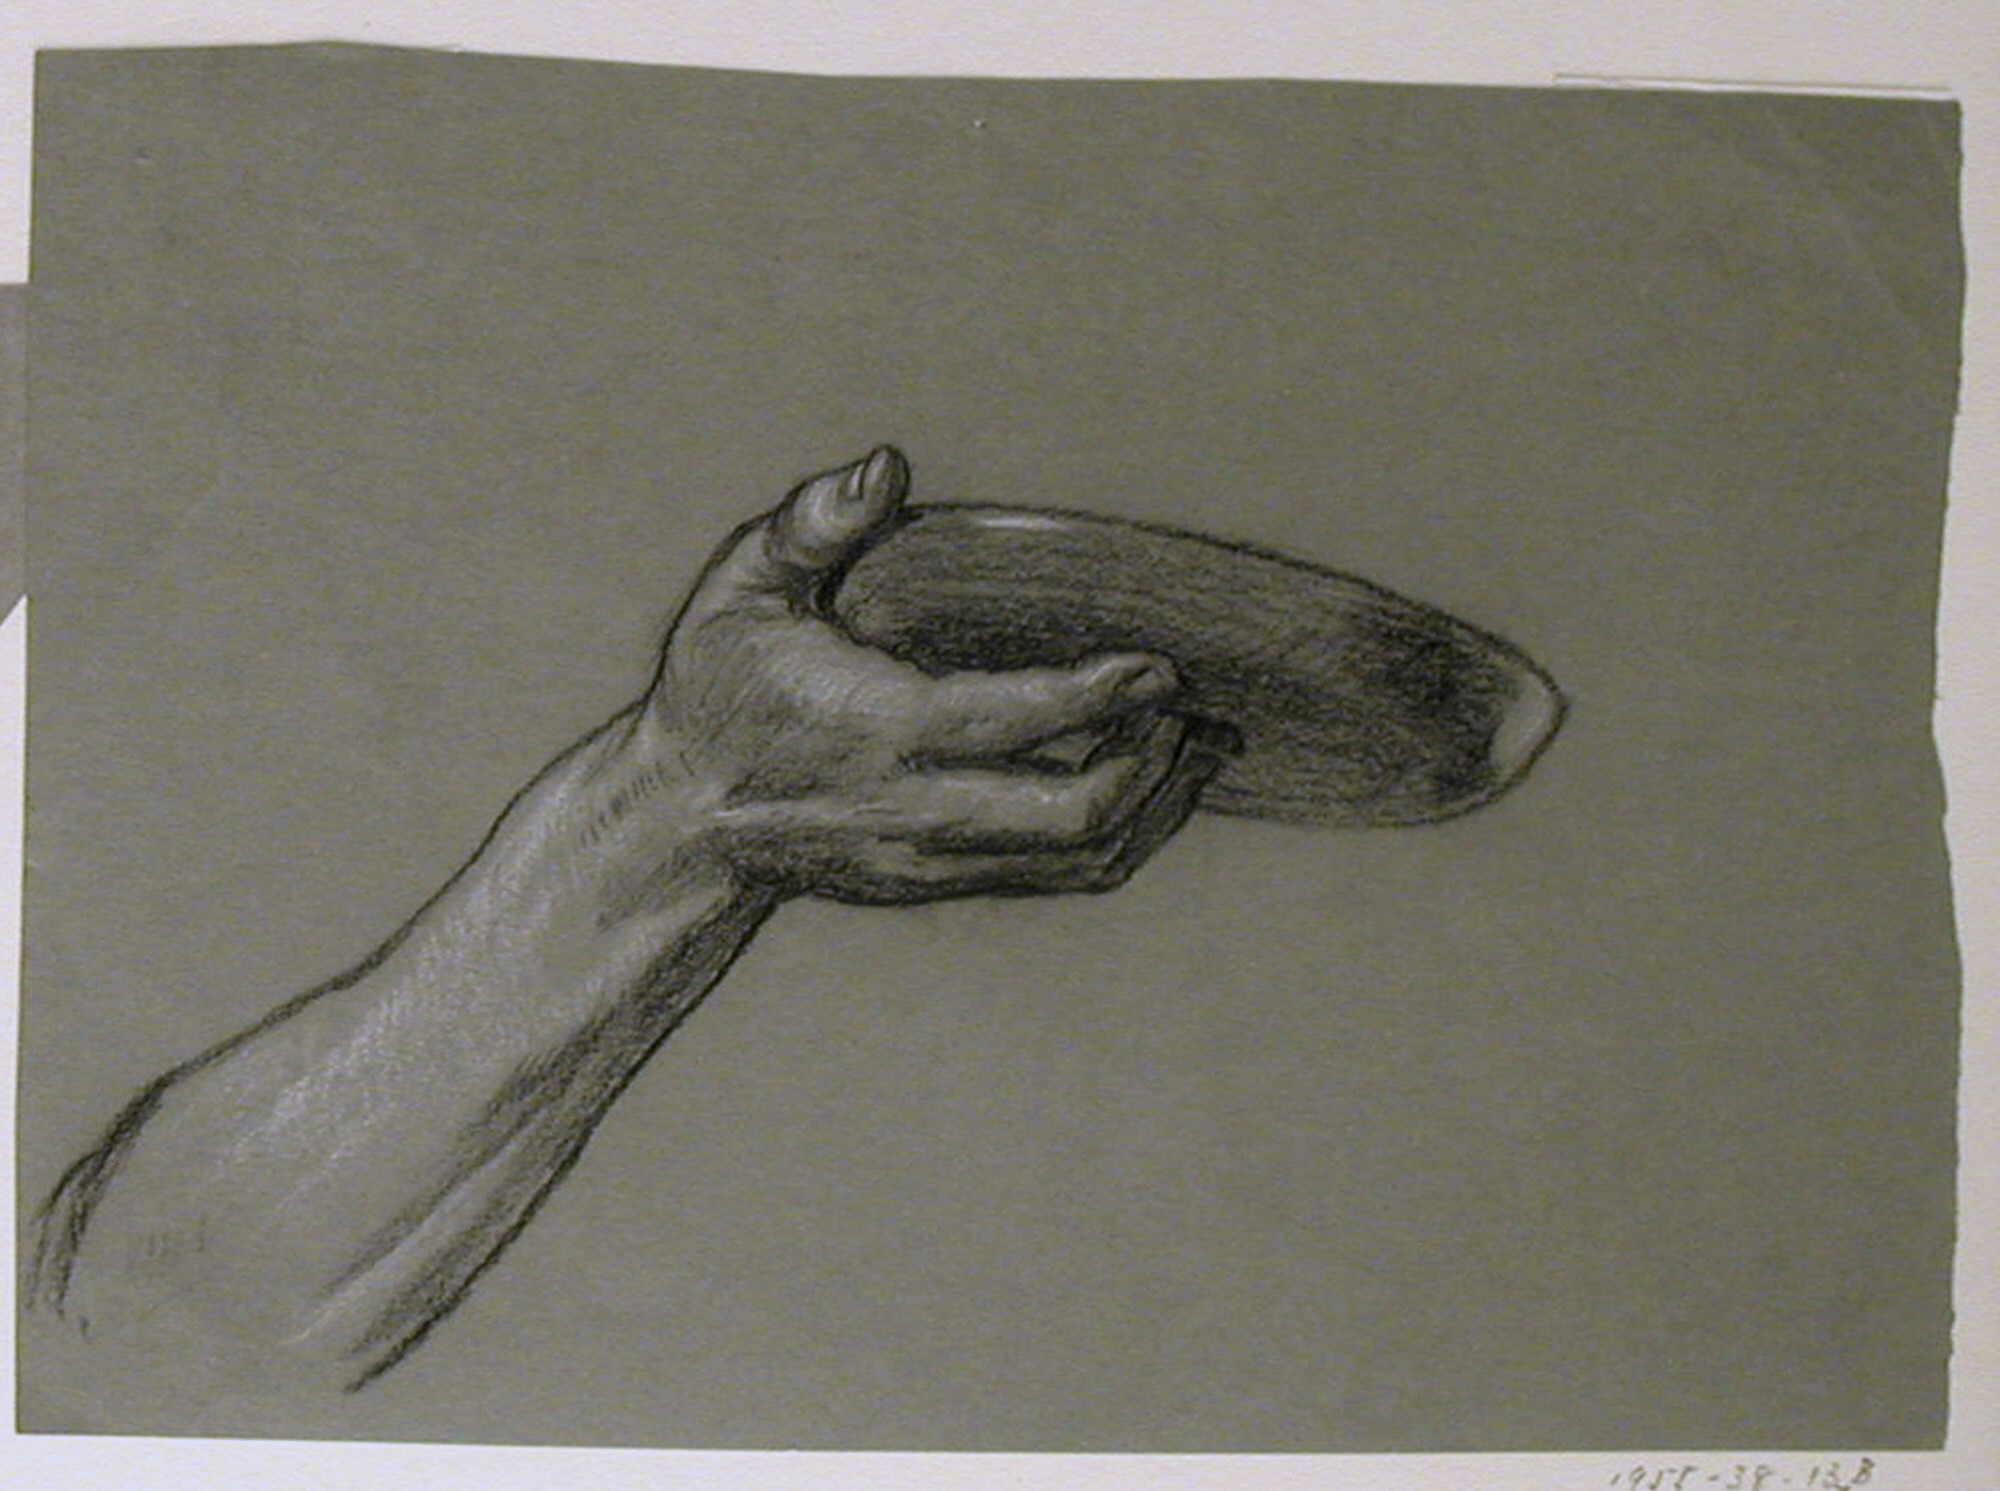 2000x1491 Drawing, Detail Of Forearm And Hand Holding Circular Object, Ca